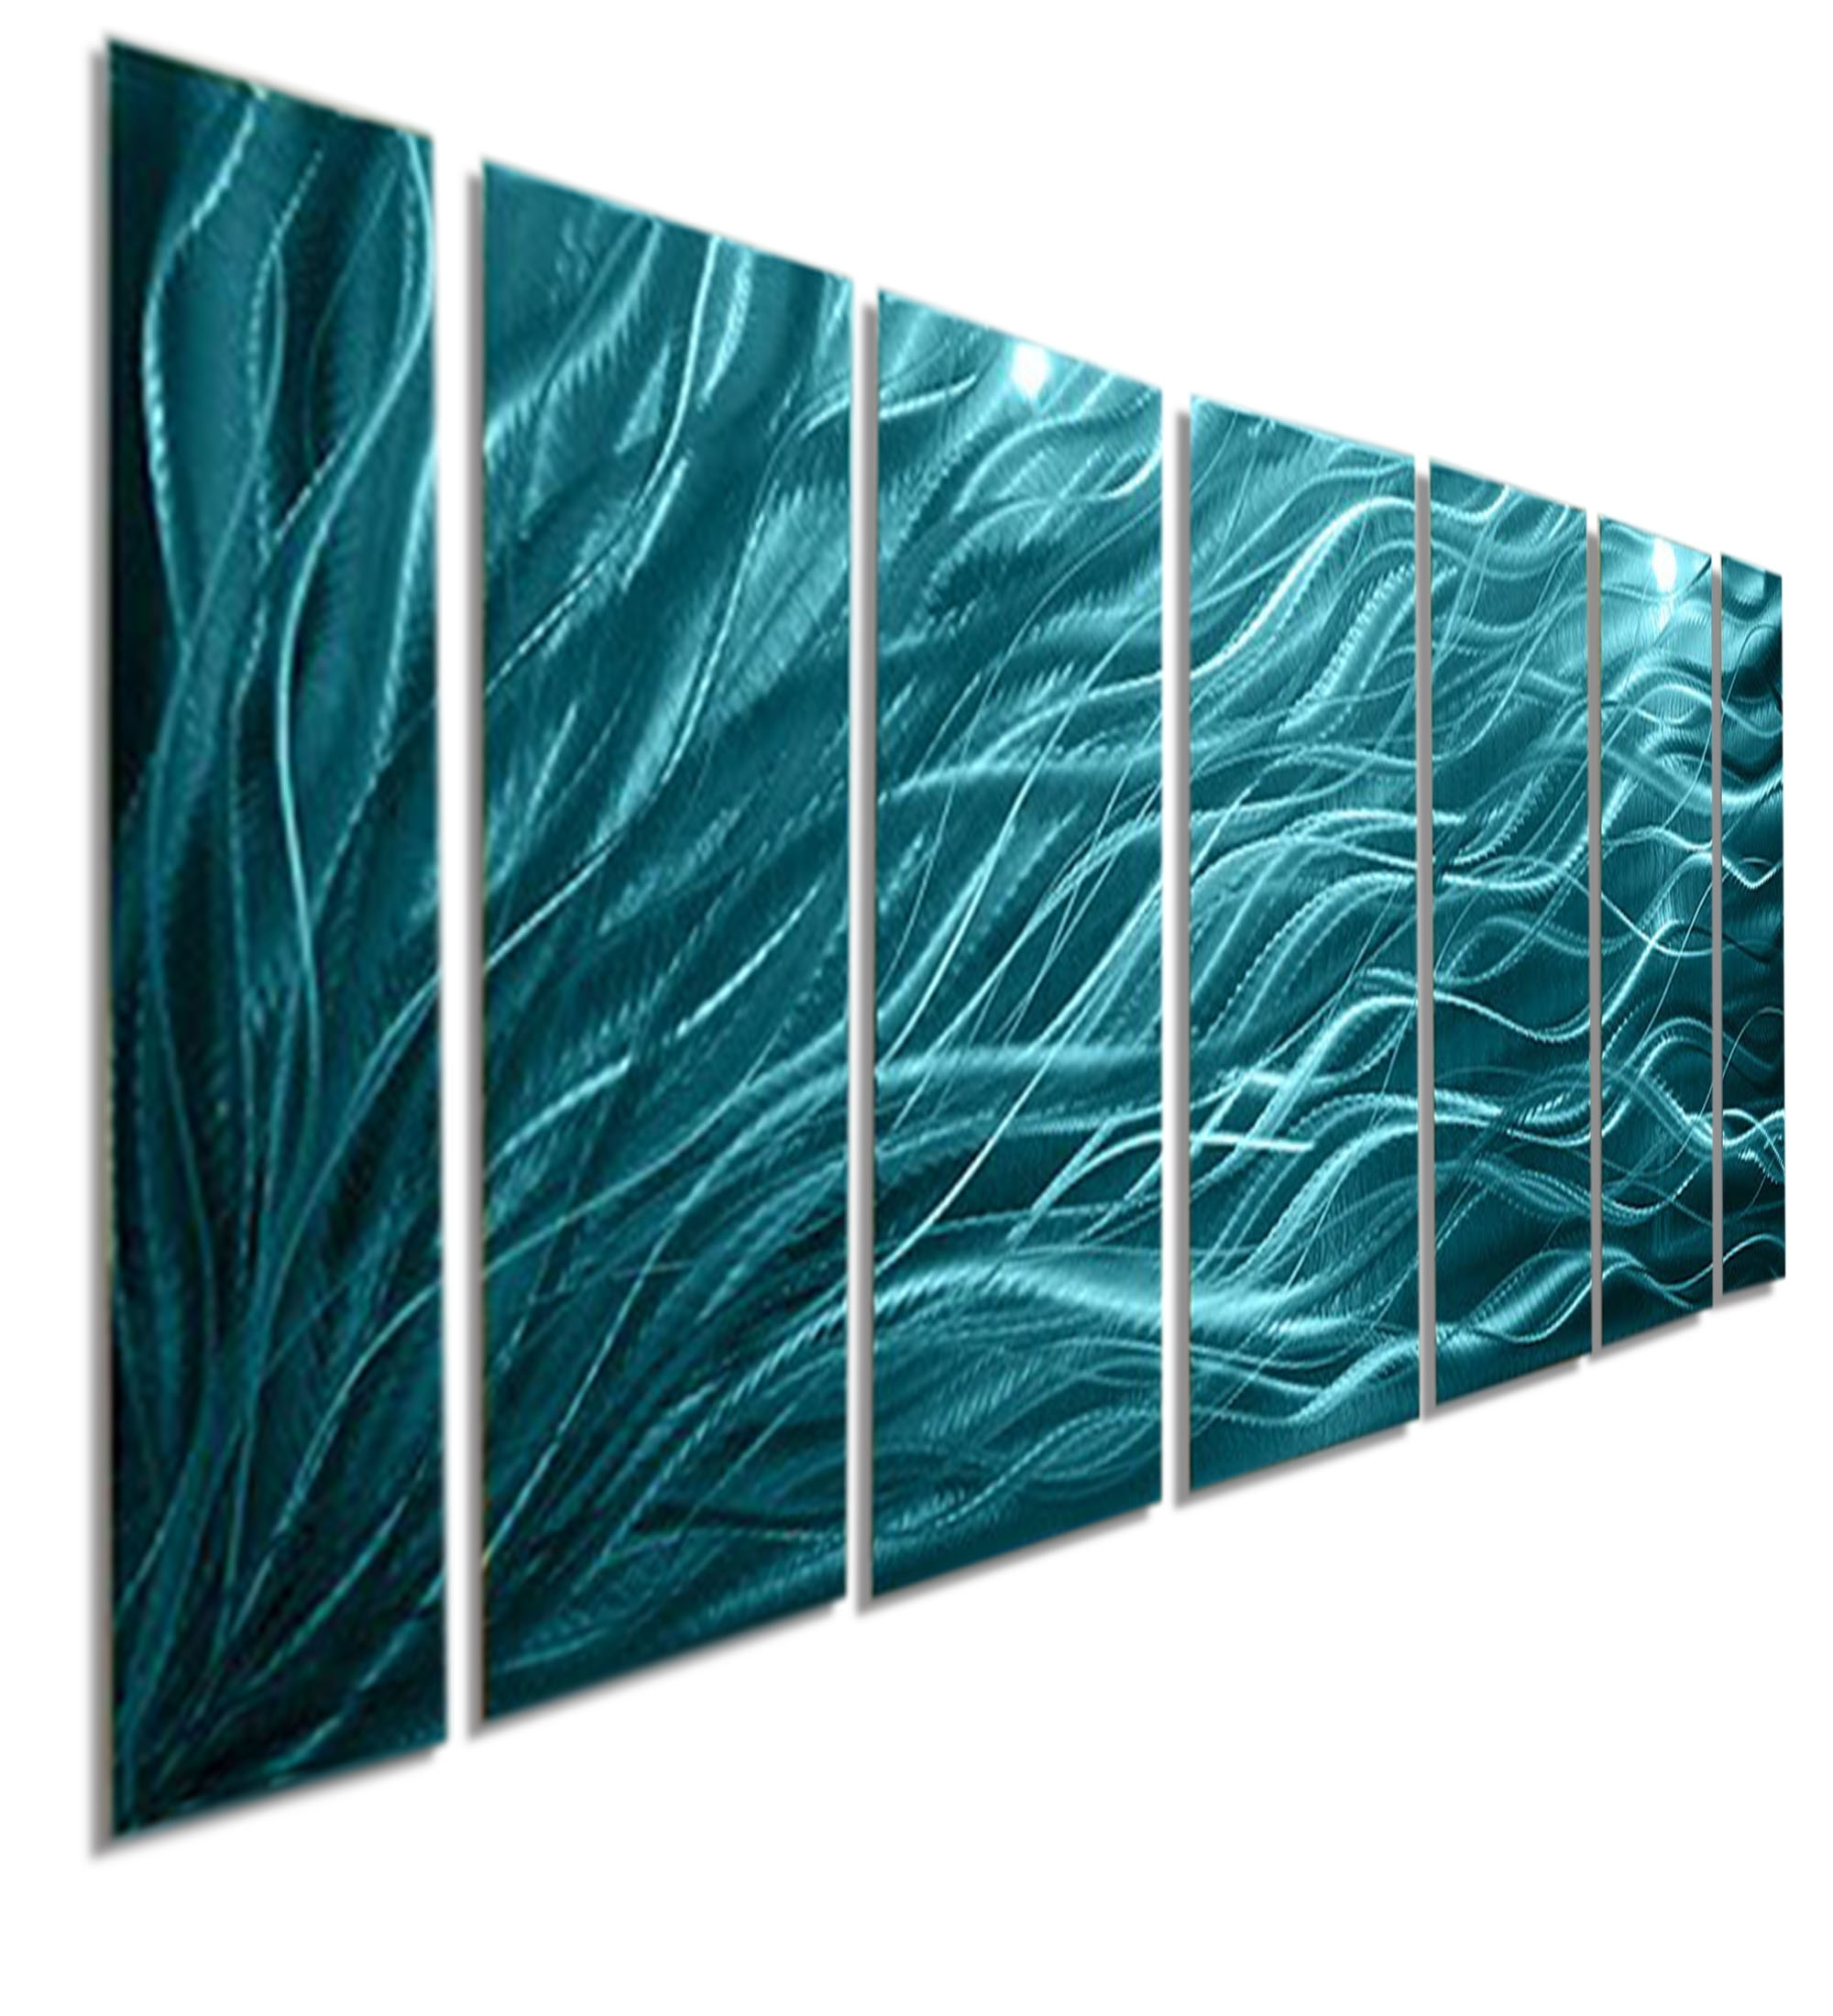 Rays Of Hope Aqua – Large Modern Abstract Metal Wall Artjon Regarding Most Current Teal Wall Art (View 12 of 15)